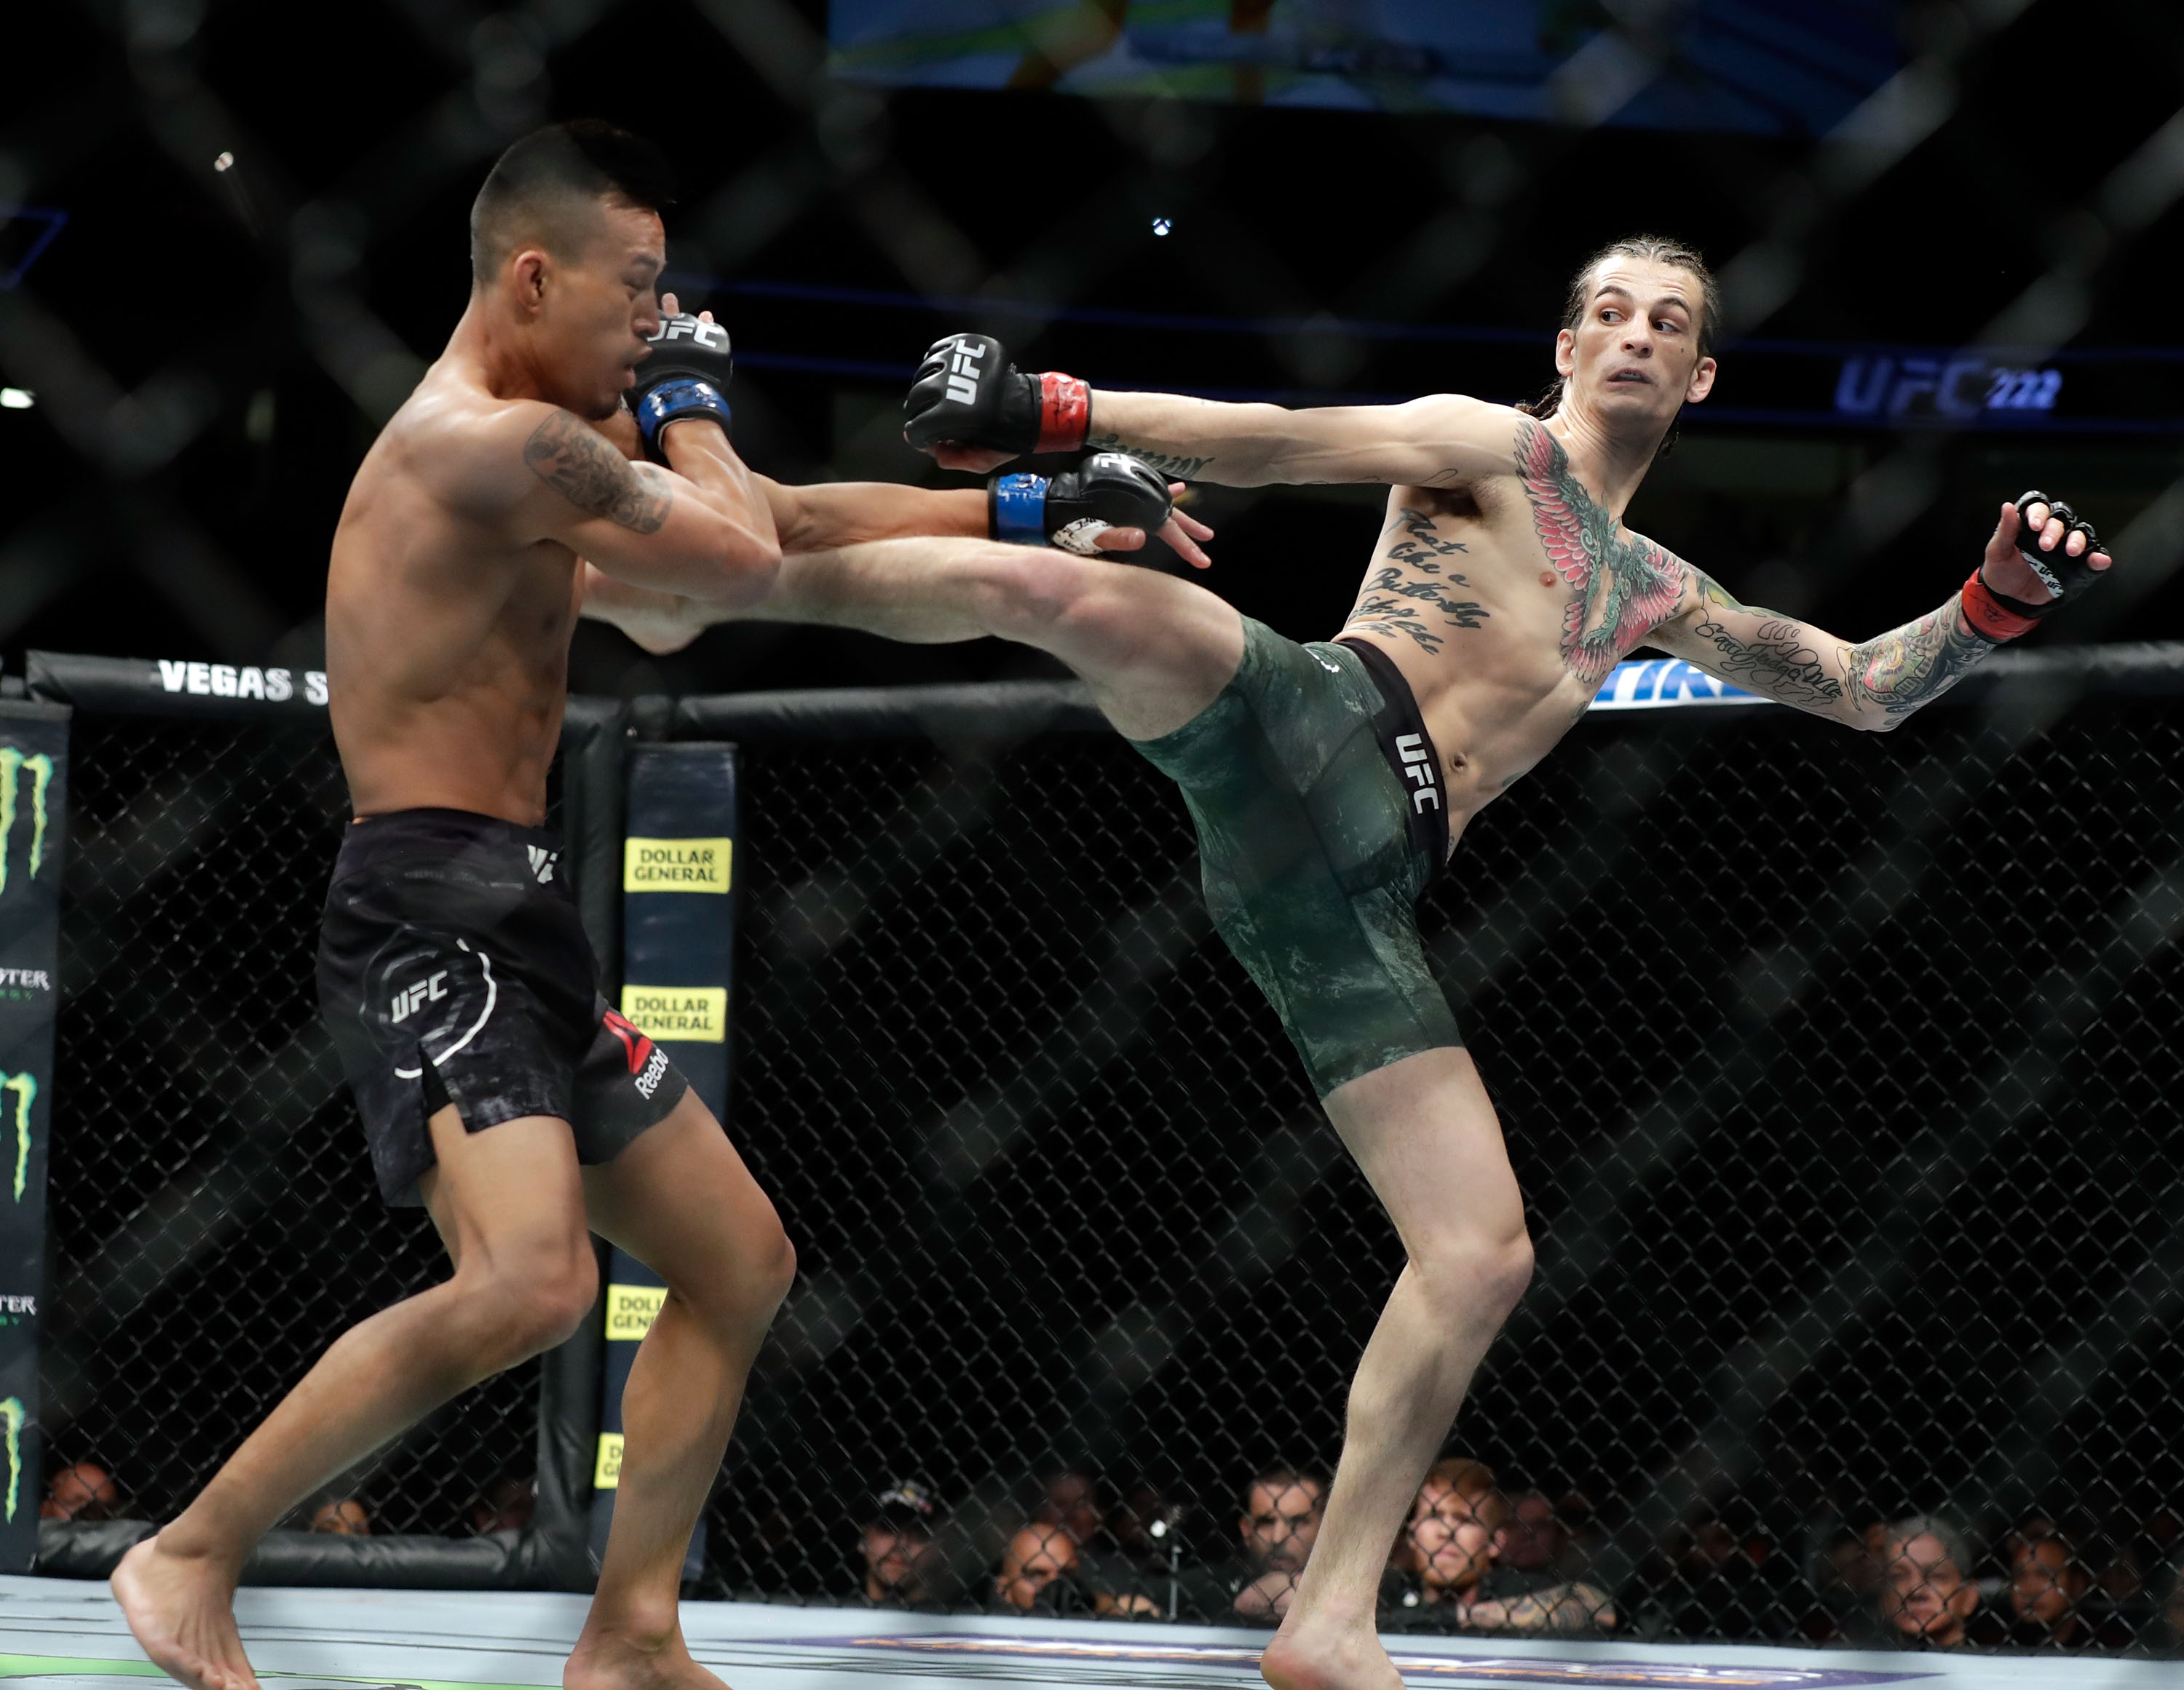 Sean O'Malley kicks Andre Soukhamthath during their bantamweight bout during UFC 222 at T-Mobile Arena on March 3, 2018 in Las Vegas, Nevada. O'Malley won by unanimous decision.